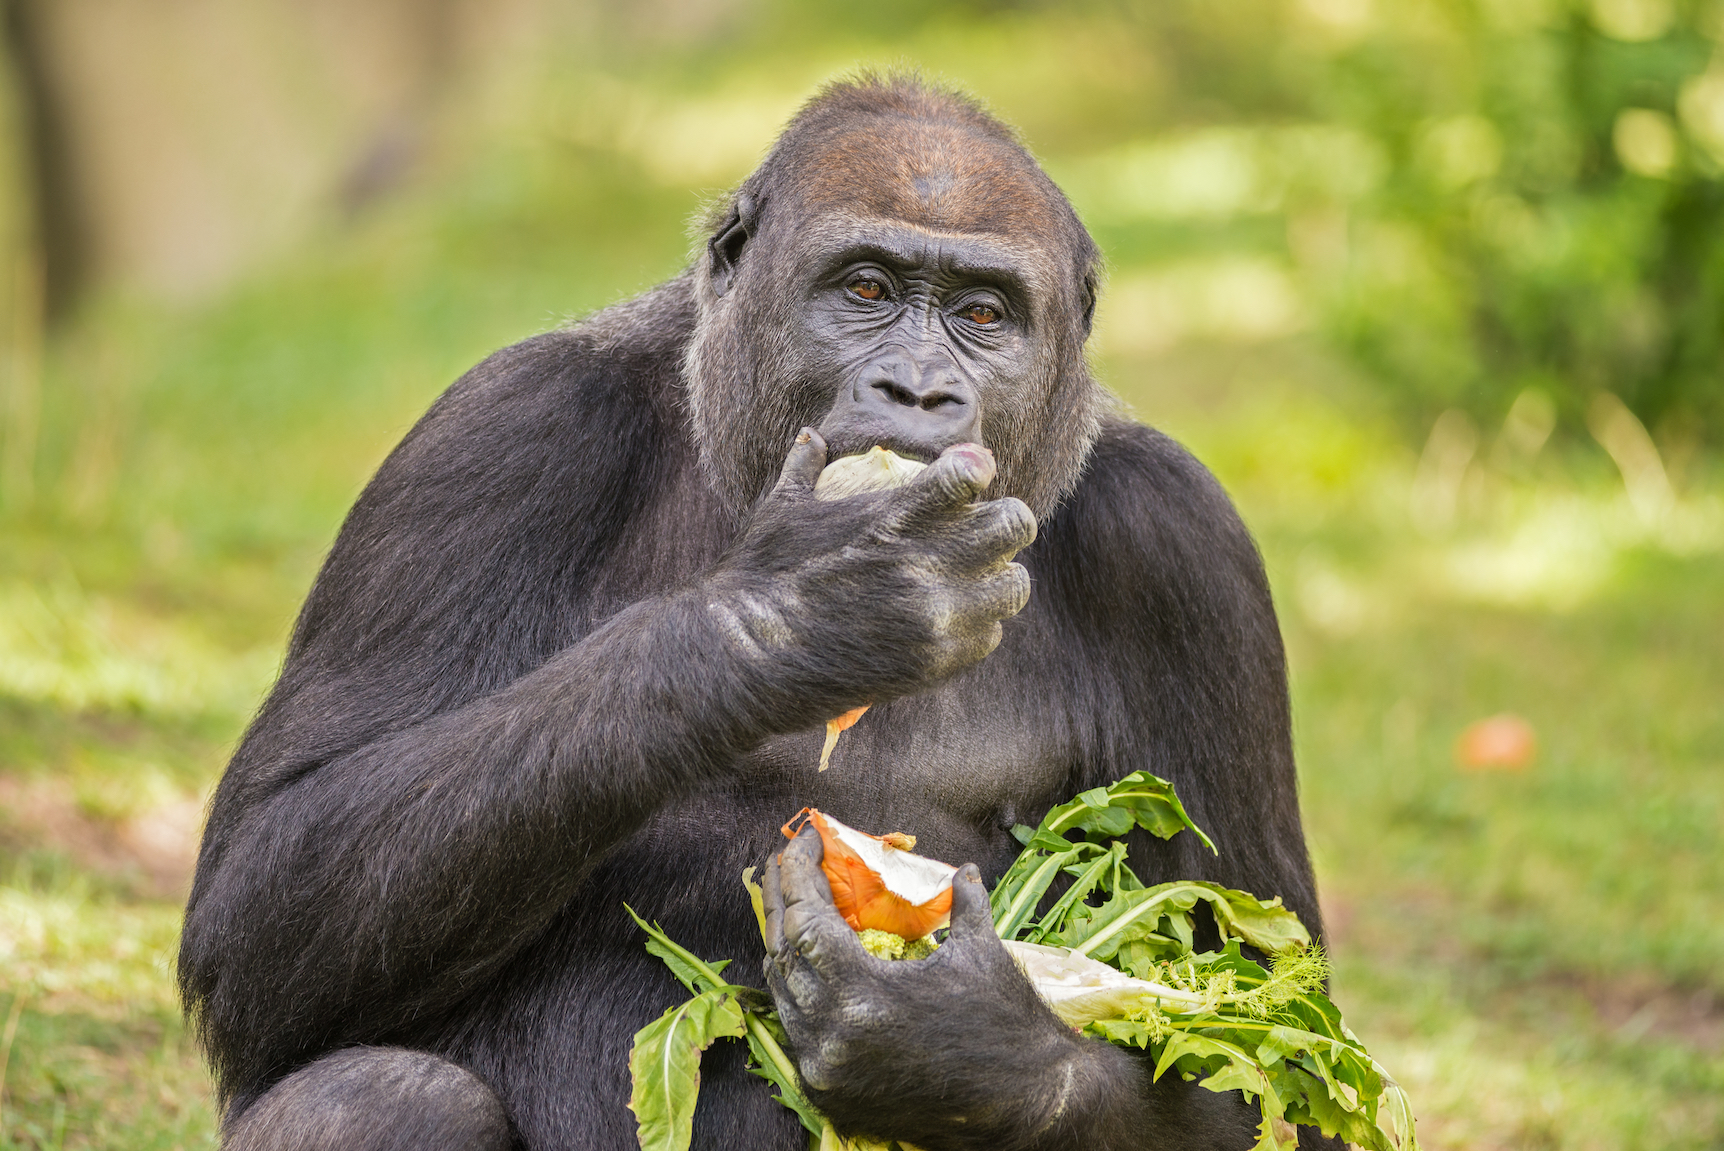 Researchers found that gorillas spontaneously learn to clean their food without having to observe the behavior in others.